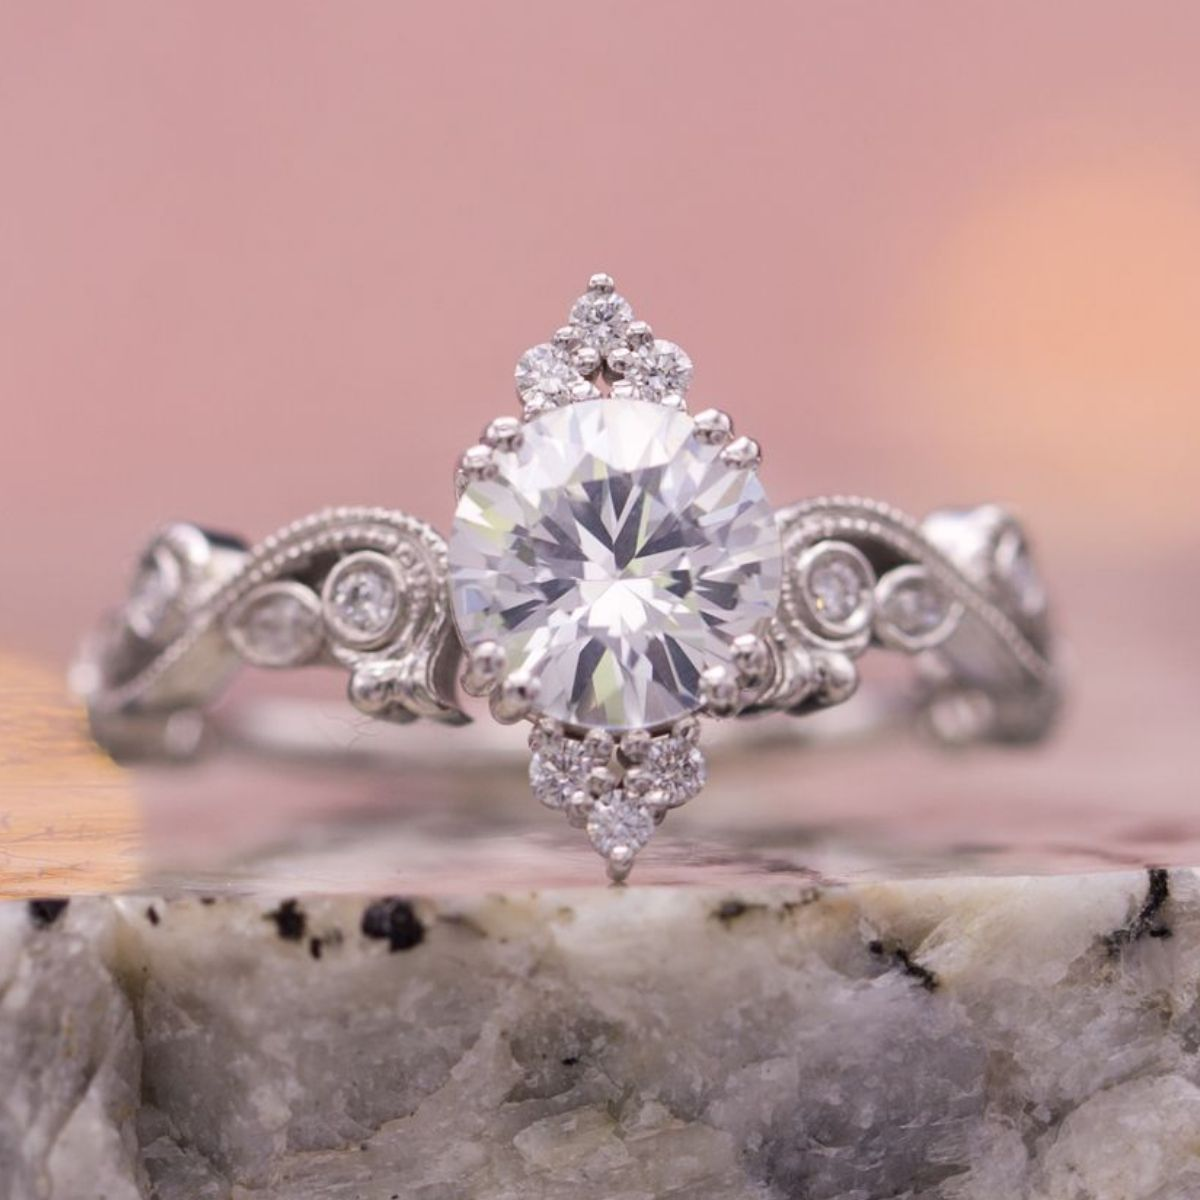 Sapphire Engagement Rings | CustomMade.com